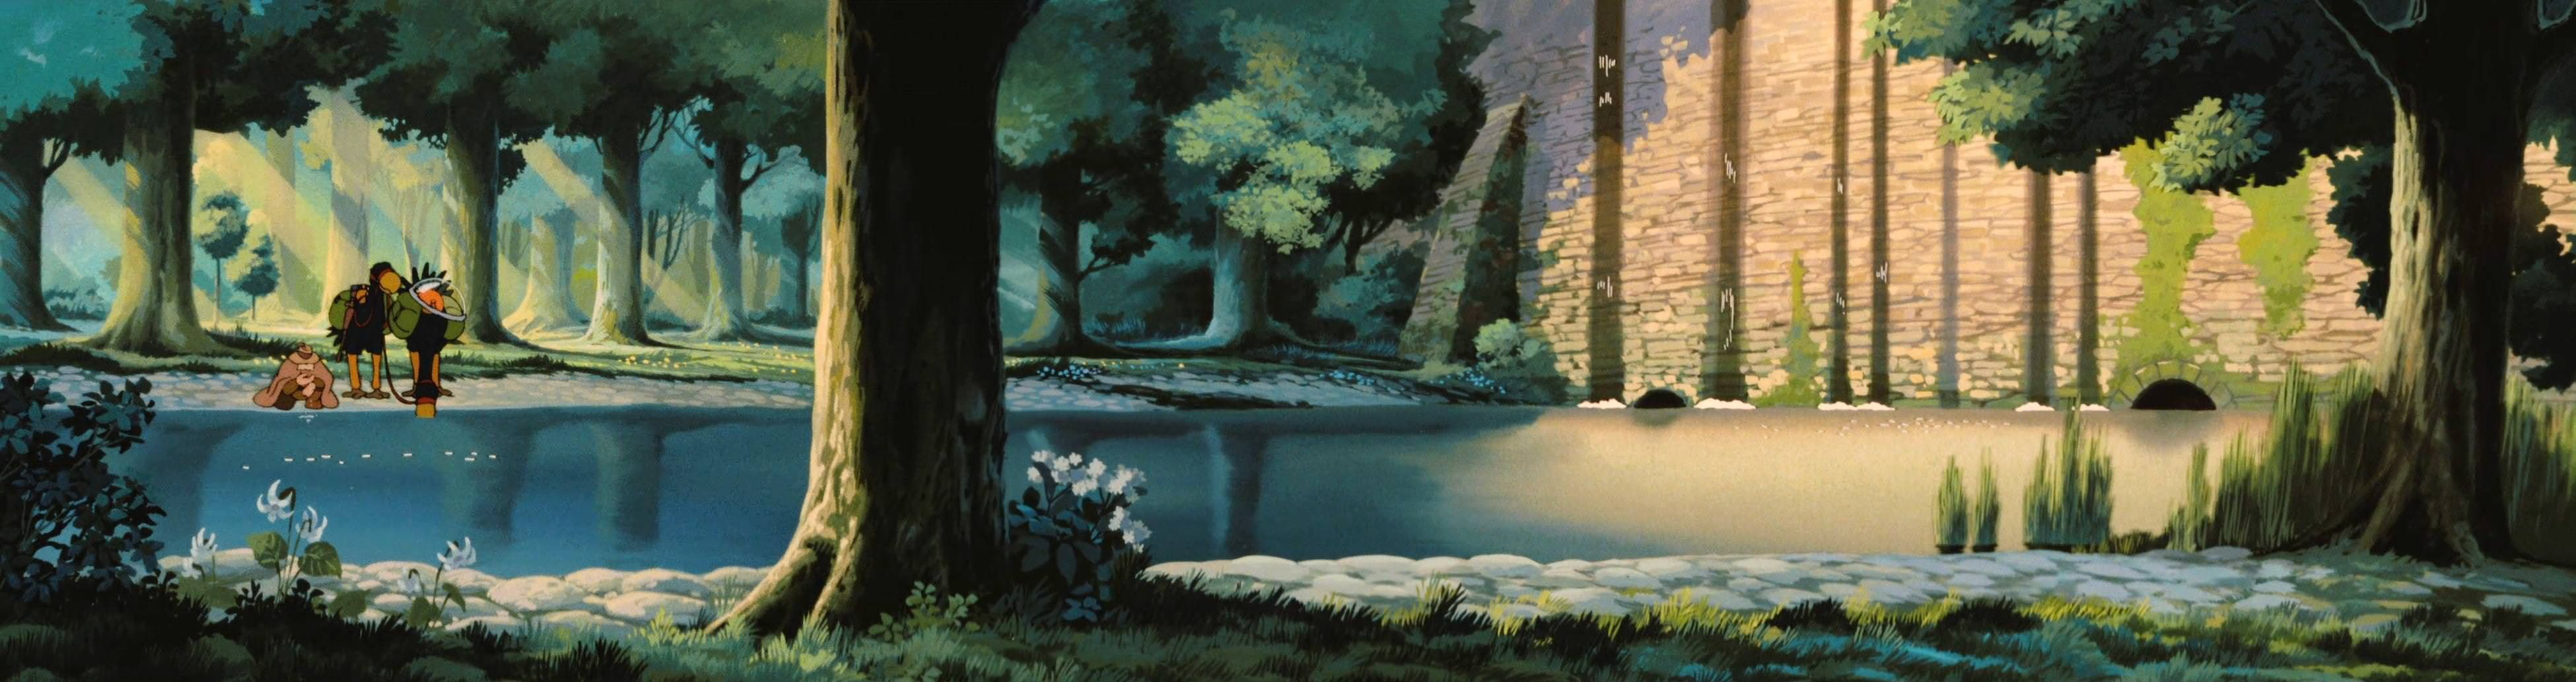 Anime Studio Ghibli 4k Wallpaper Hdwallpaper Desktop Ghibli Artwork Studio Ghibli Ghibli